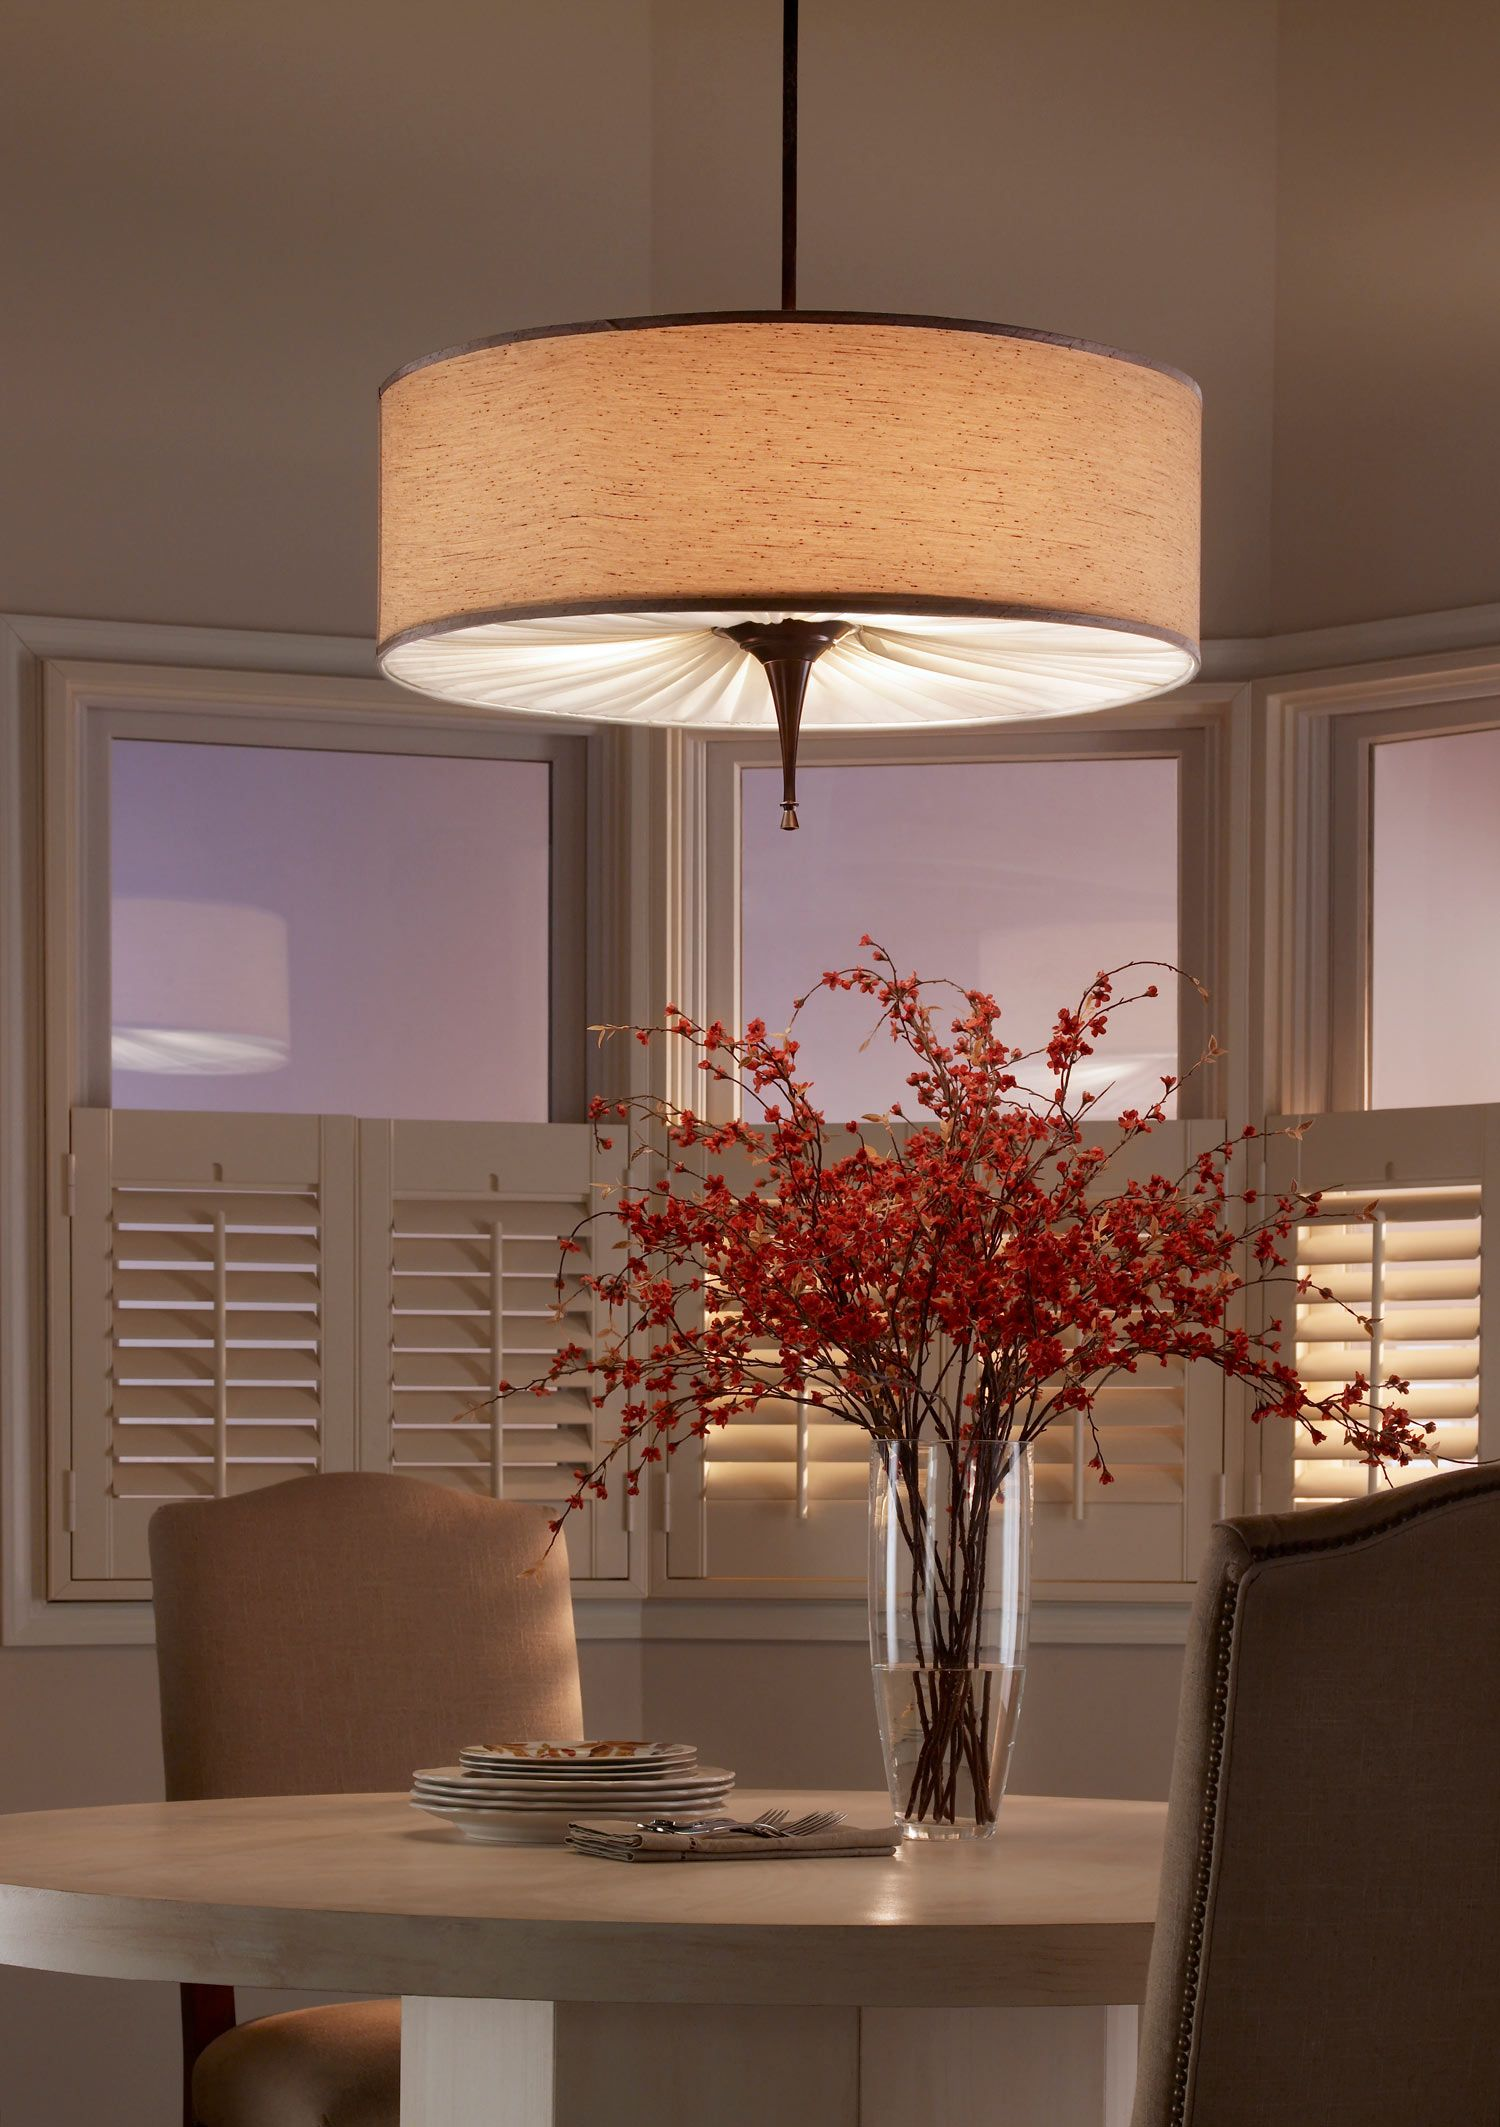 updating kitchen lighting fixtures if you want to renovate your kitchen - Kitchen Dining Light Fixtures